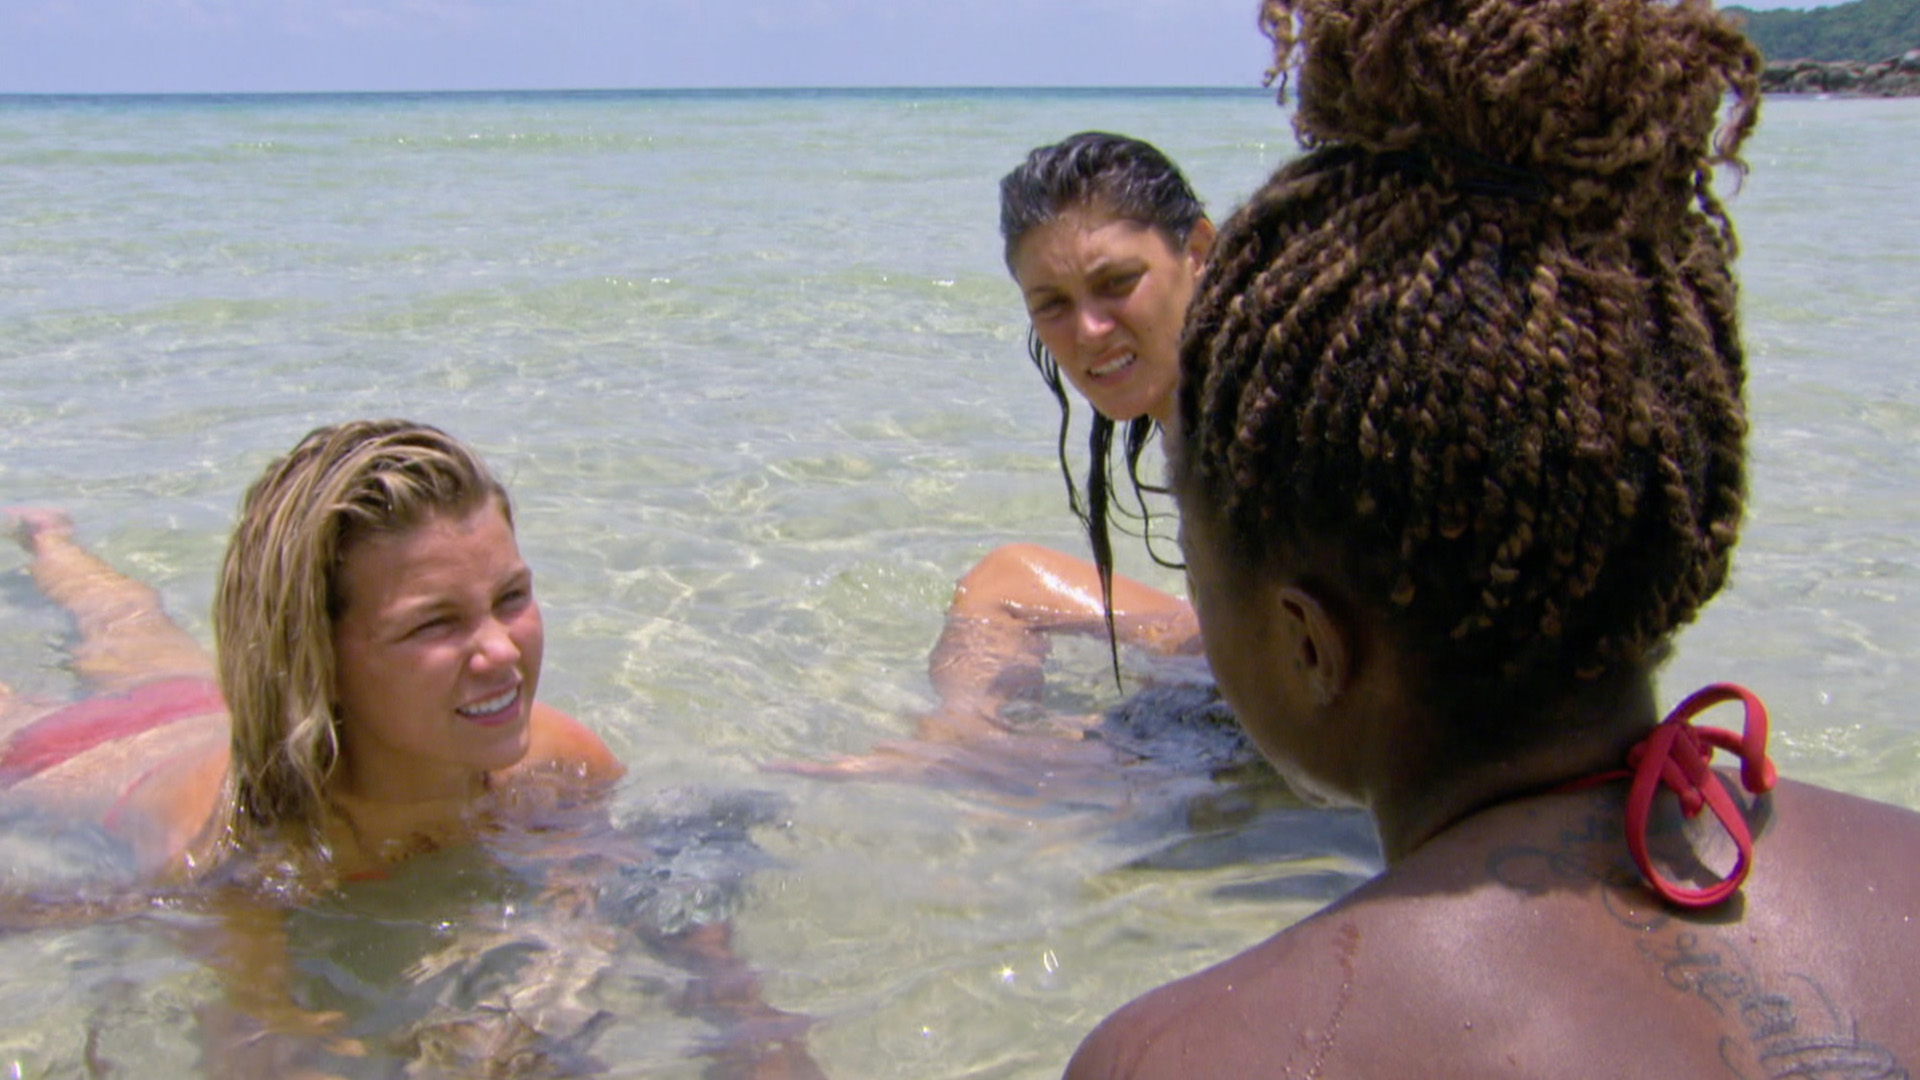 Julia, Michele, and Cydney have a girls-only chat in the ocean.